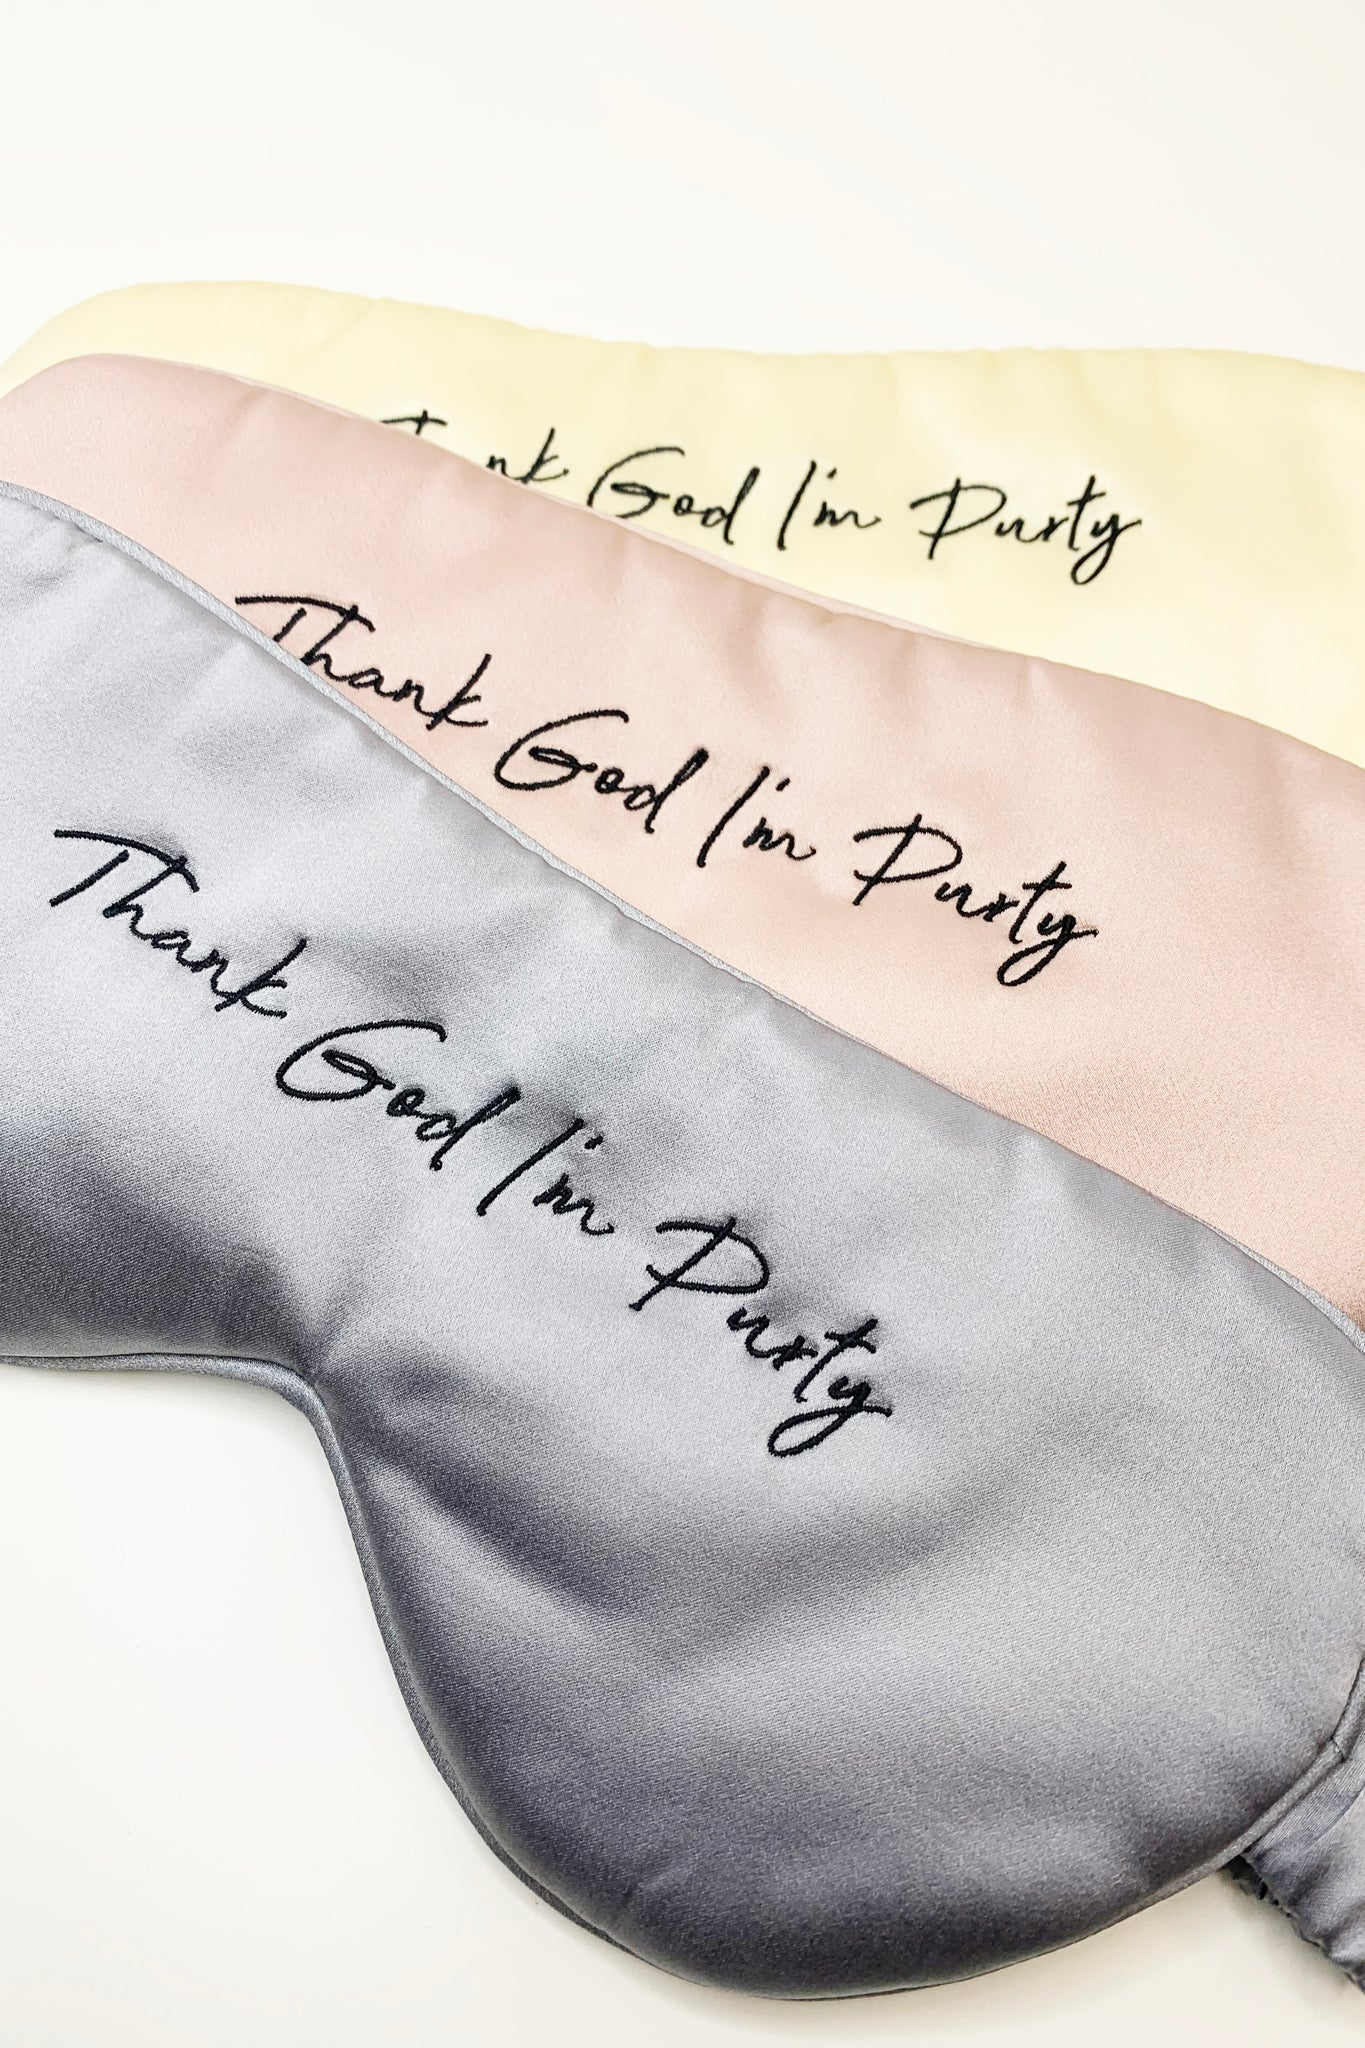 Thank God I'm Purty Silk Sleep Mask in Mink , Buttercream and Dusty Rose